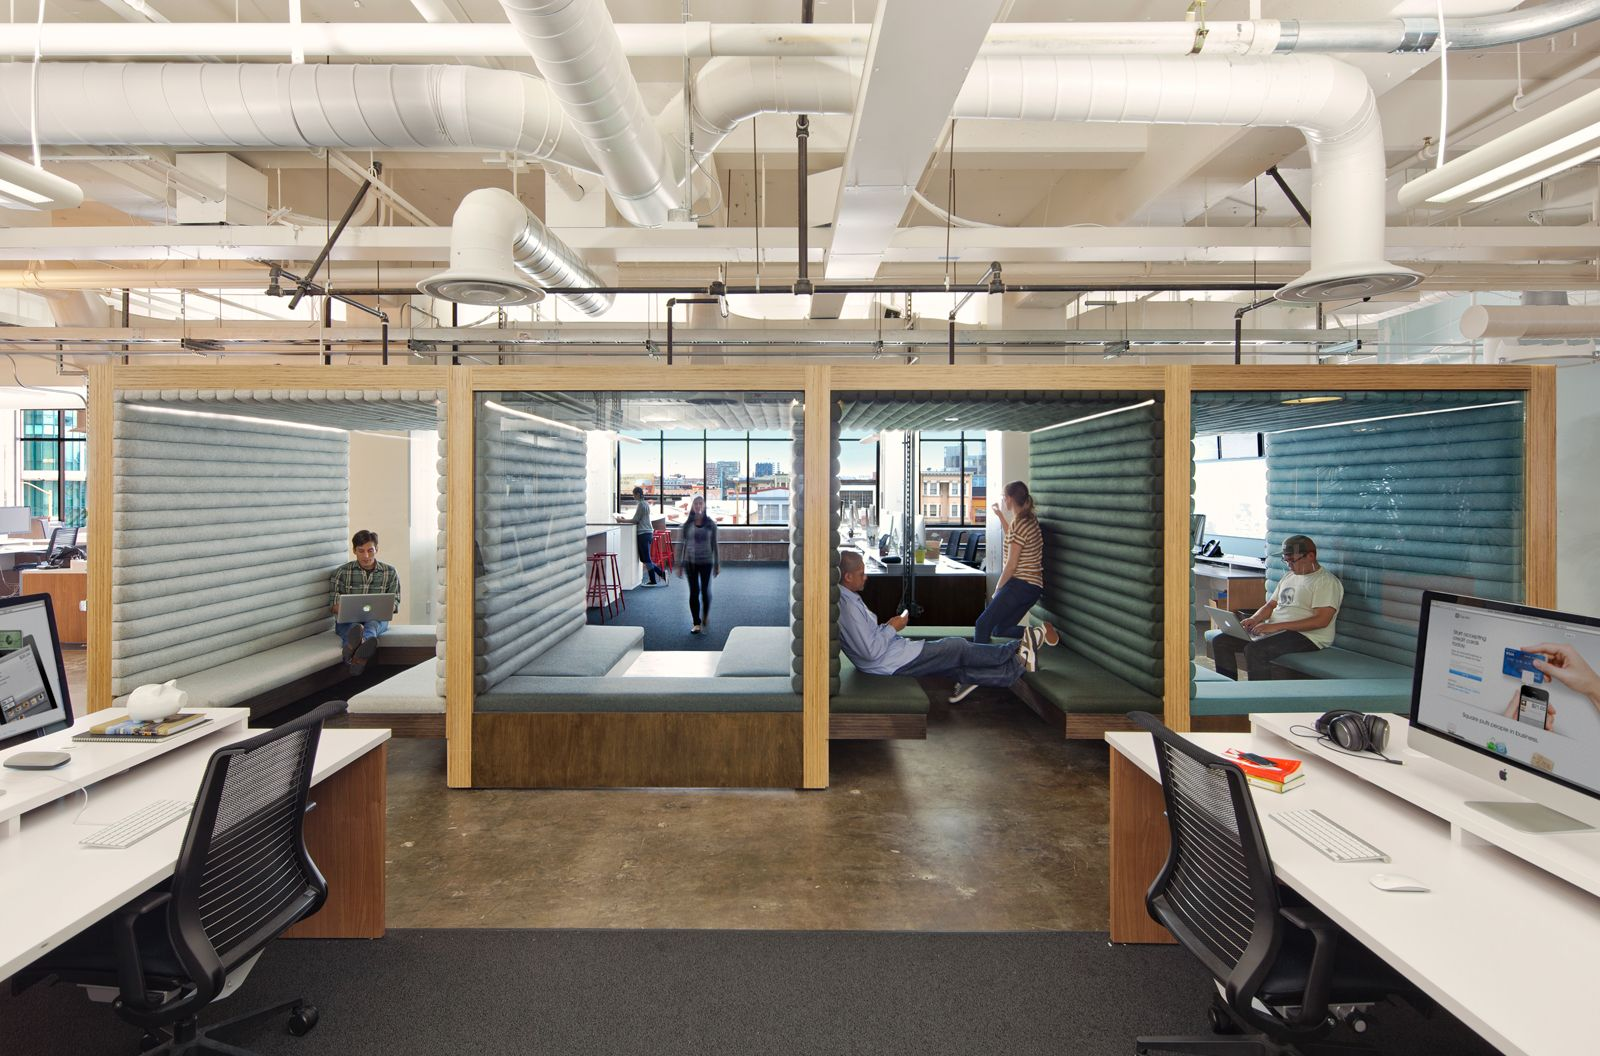 Inside the Latest OfficeDesign Craze Hot Desking  Industrial